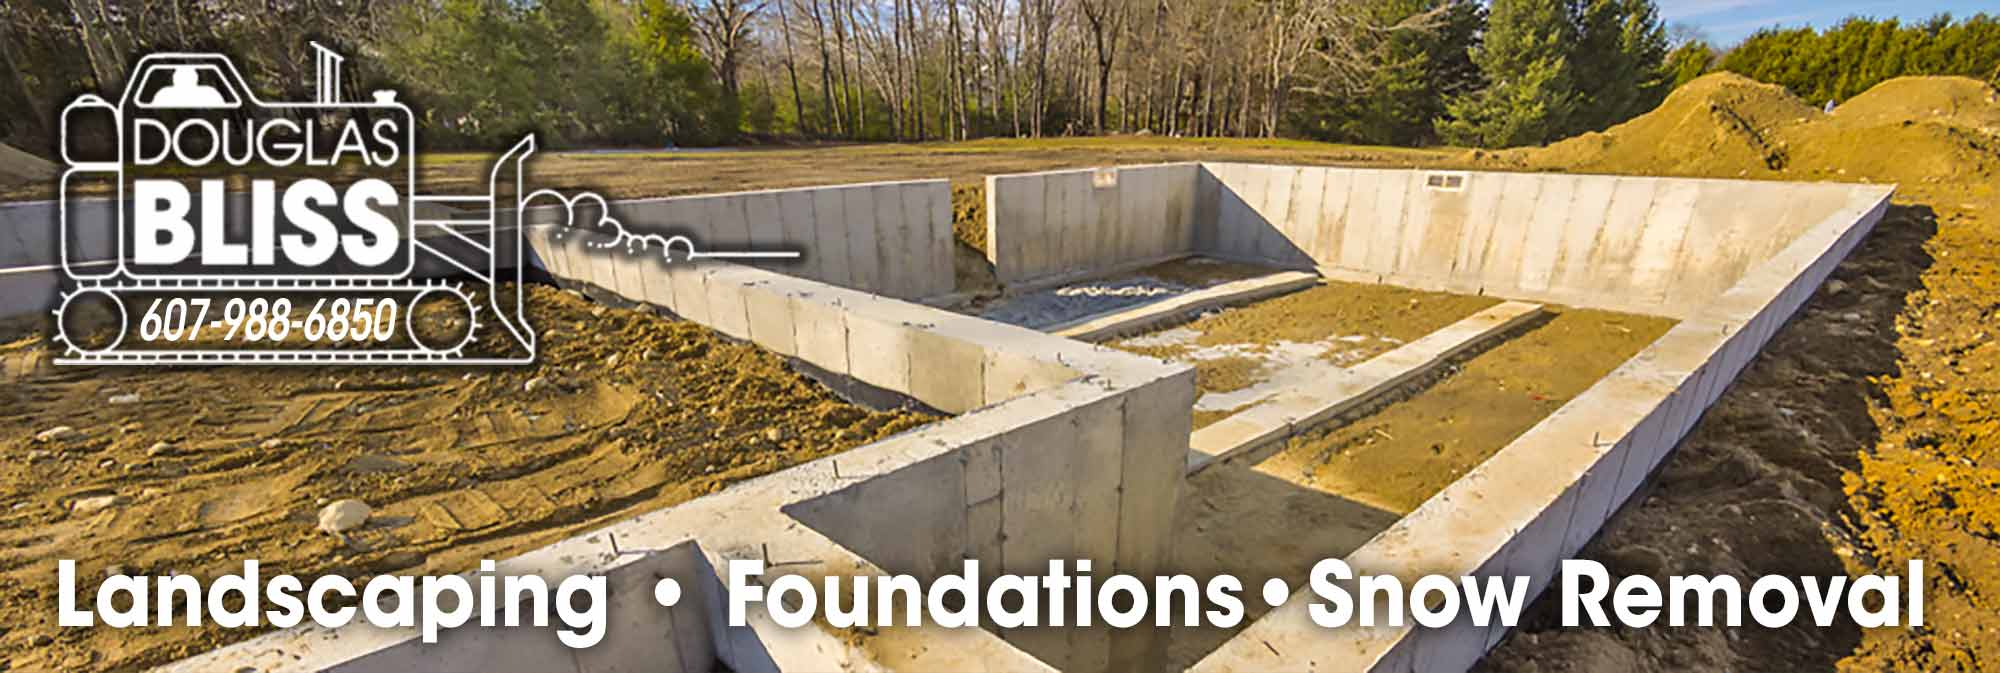 Doug Bliss 607-988-6850 Landscaping Foundations Snow Removal